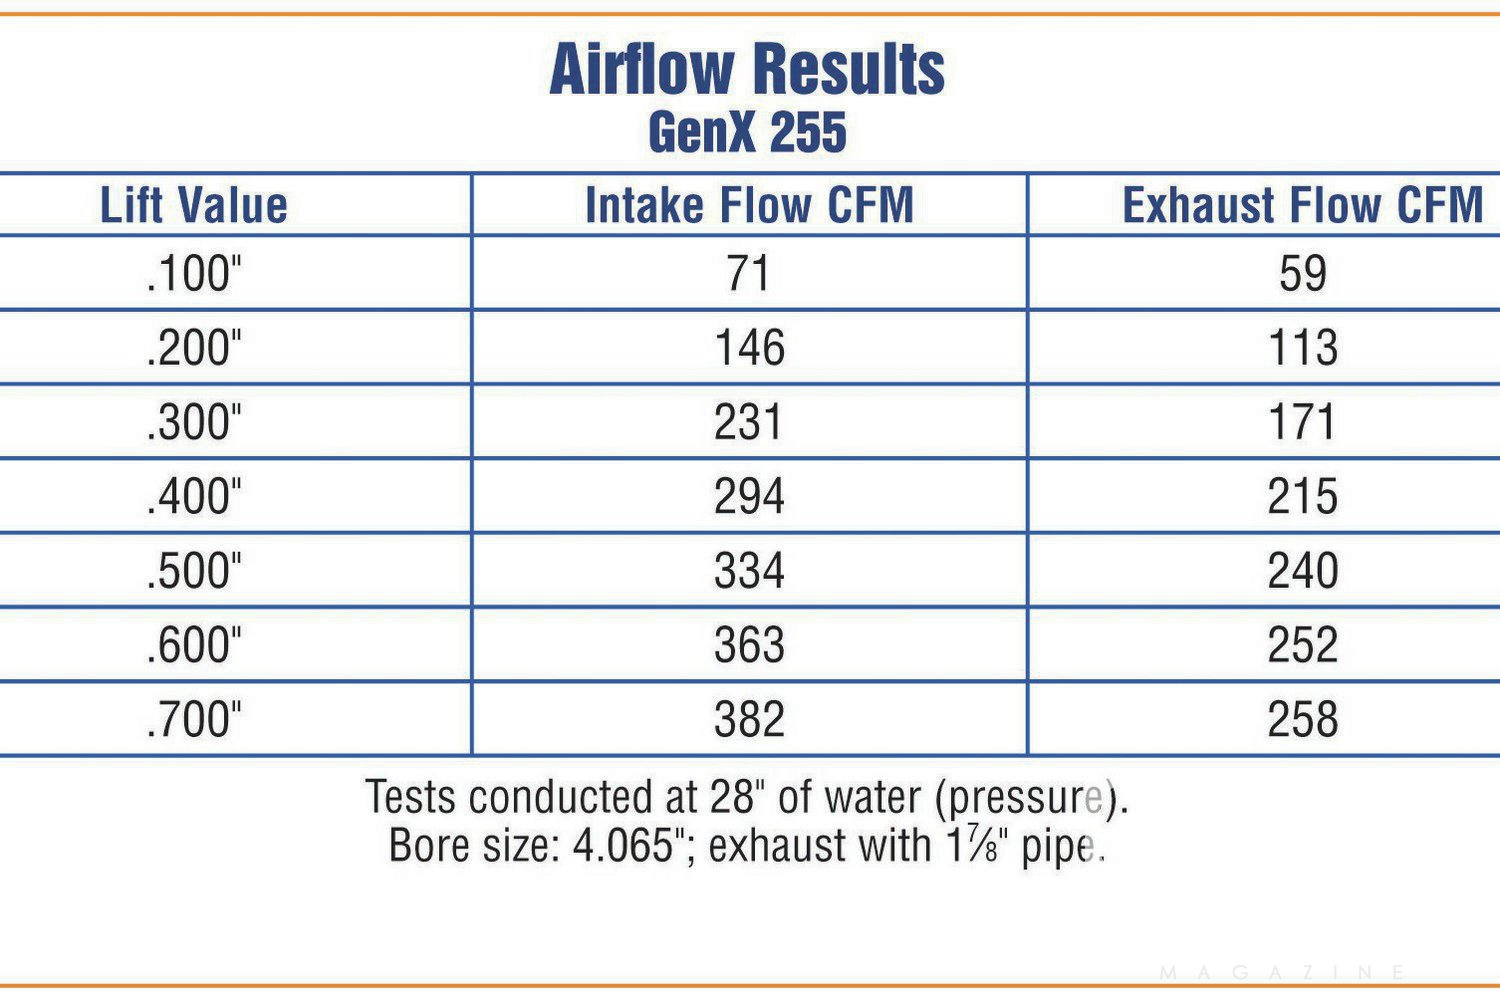 Looking at the airflow results, we were impressed with the mid-lift flow numbers, not just max lift flow. These cylinder heads have the potential to flow enough air to make 700 hp. Yes, these are TFS's test results, but we've had no reason to doubt Trick Flow's numbers in the past.